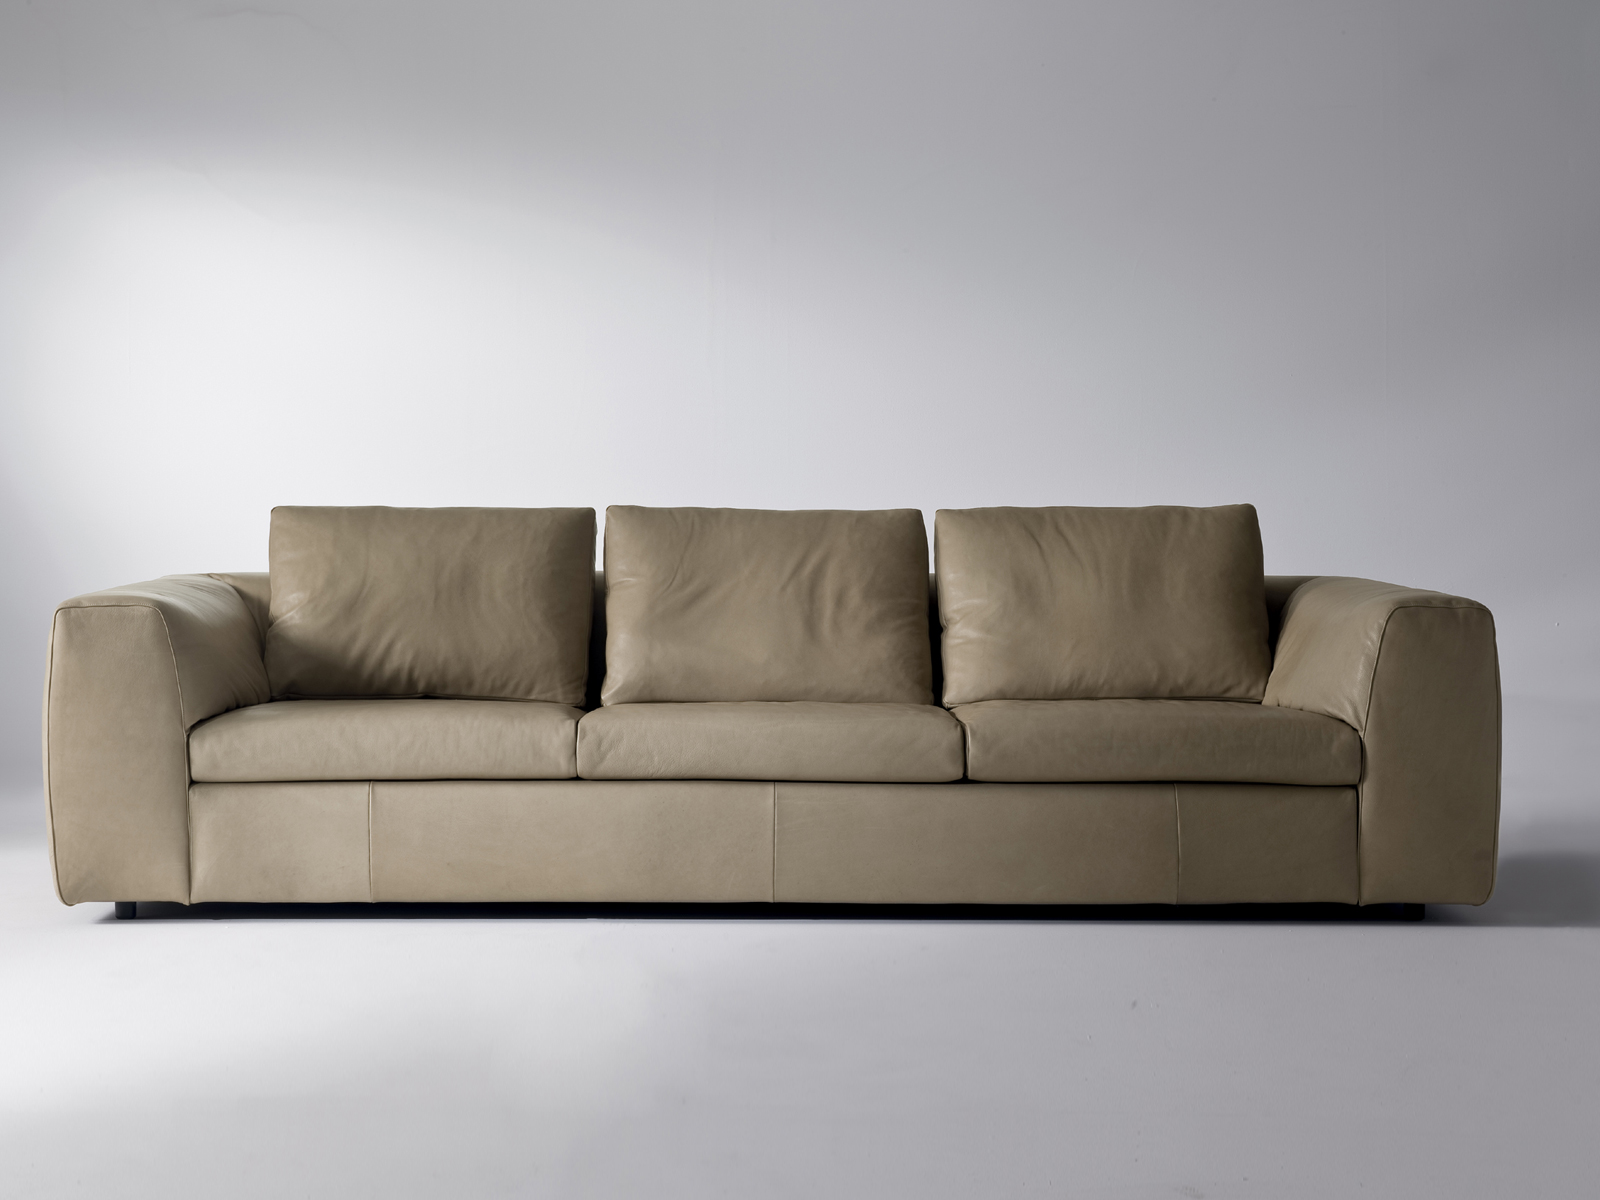 Glac 3 seater sofa by i 4 mariani design mauro lipparini for 9 seater sofa set designs